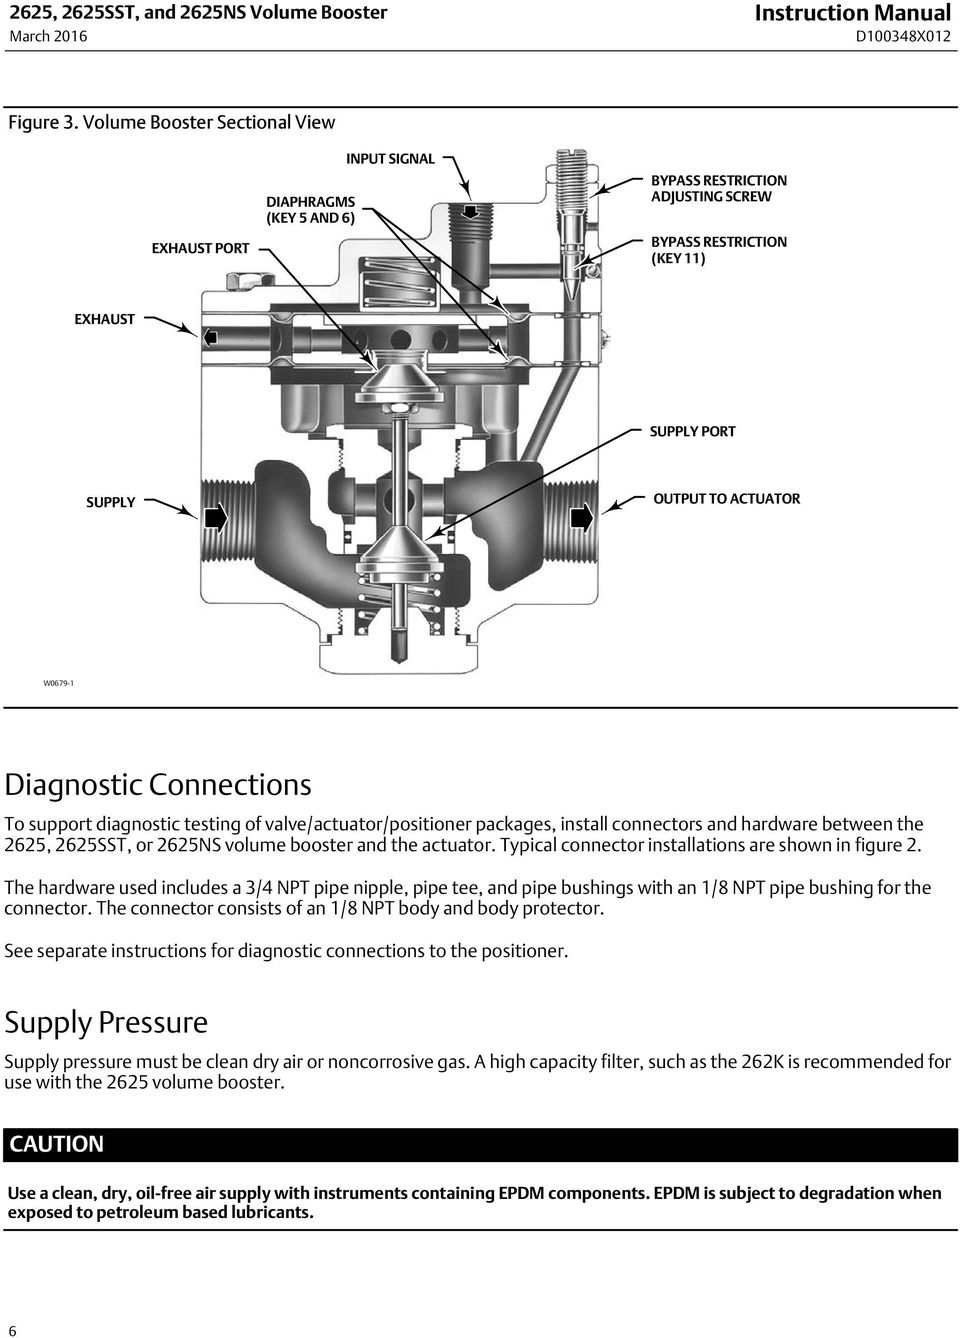 Diagnostic Connections To support diagnostic testing of valve/actuator/positioner packages, install connectors and hardware between the 2625, 2625SST, or 2625NS volume booster and the actuator.